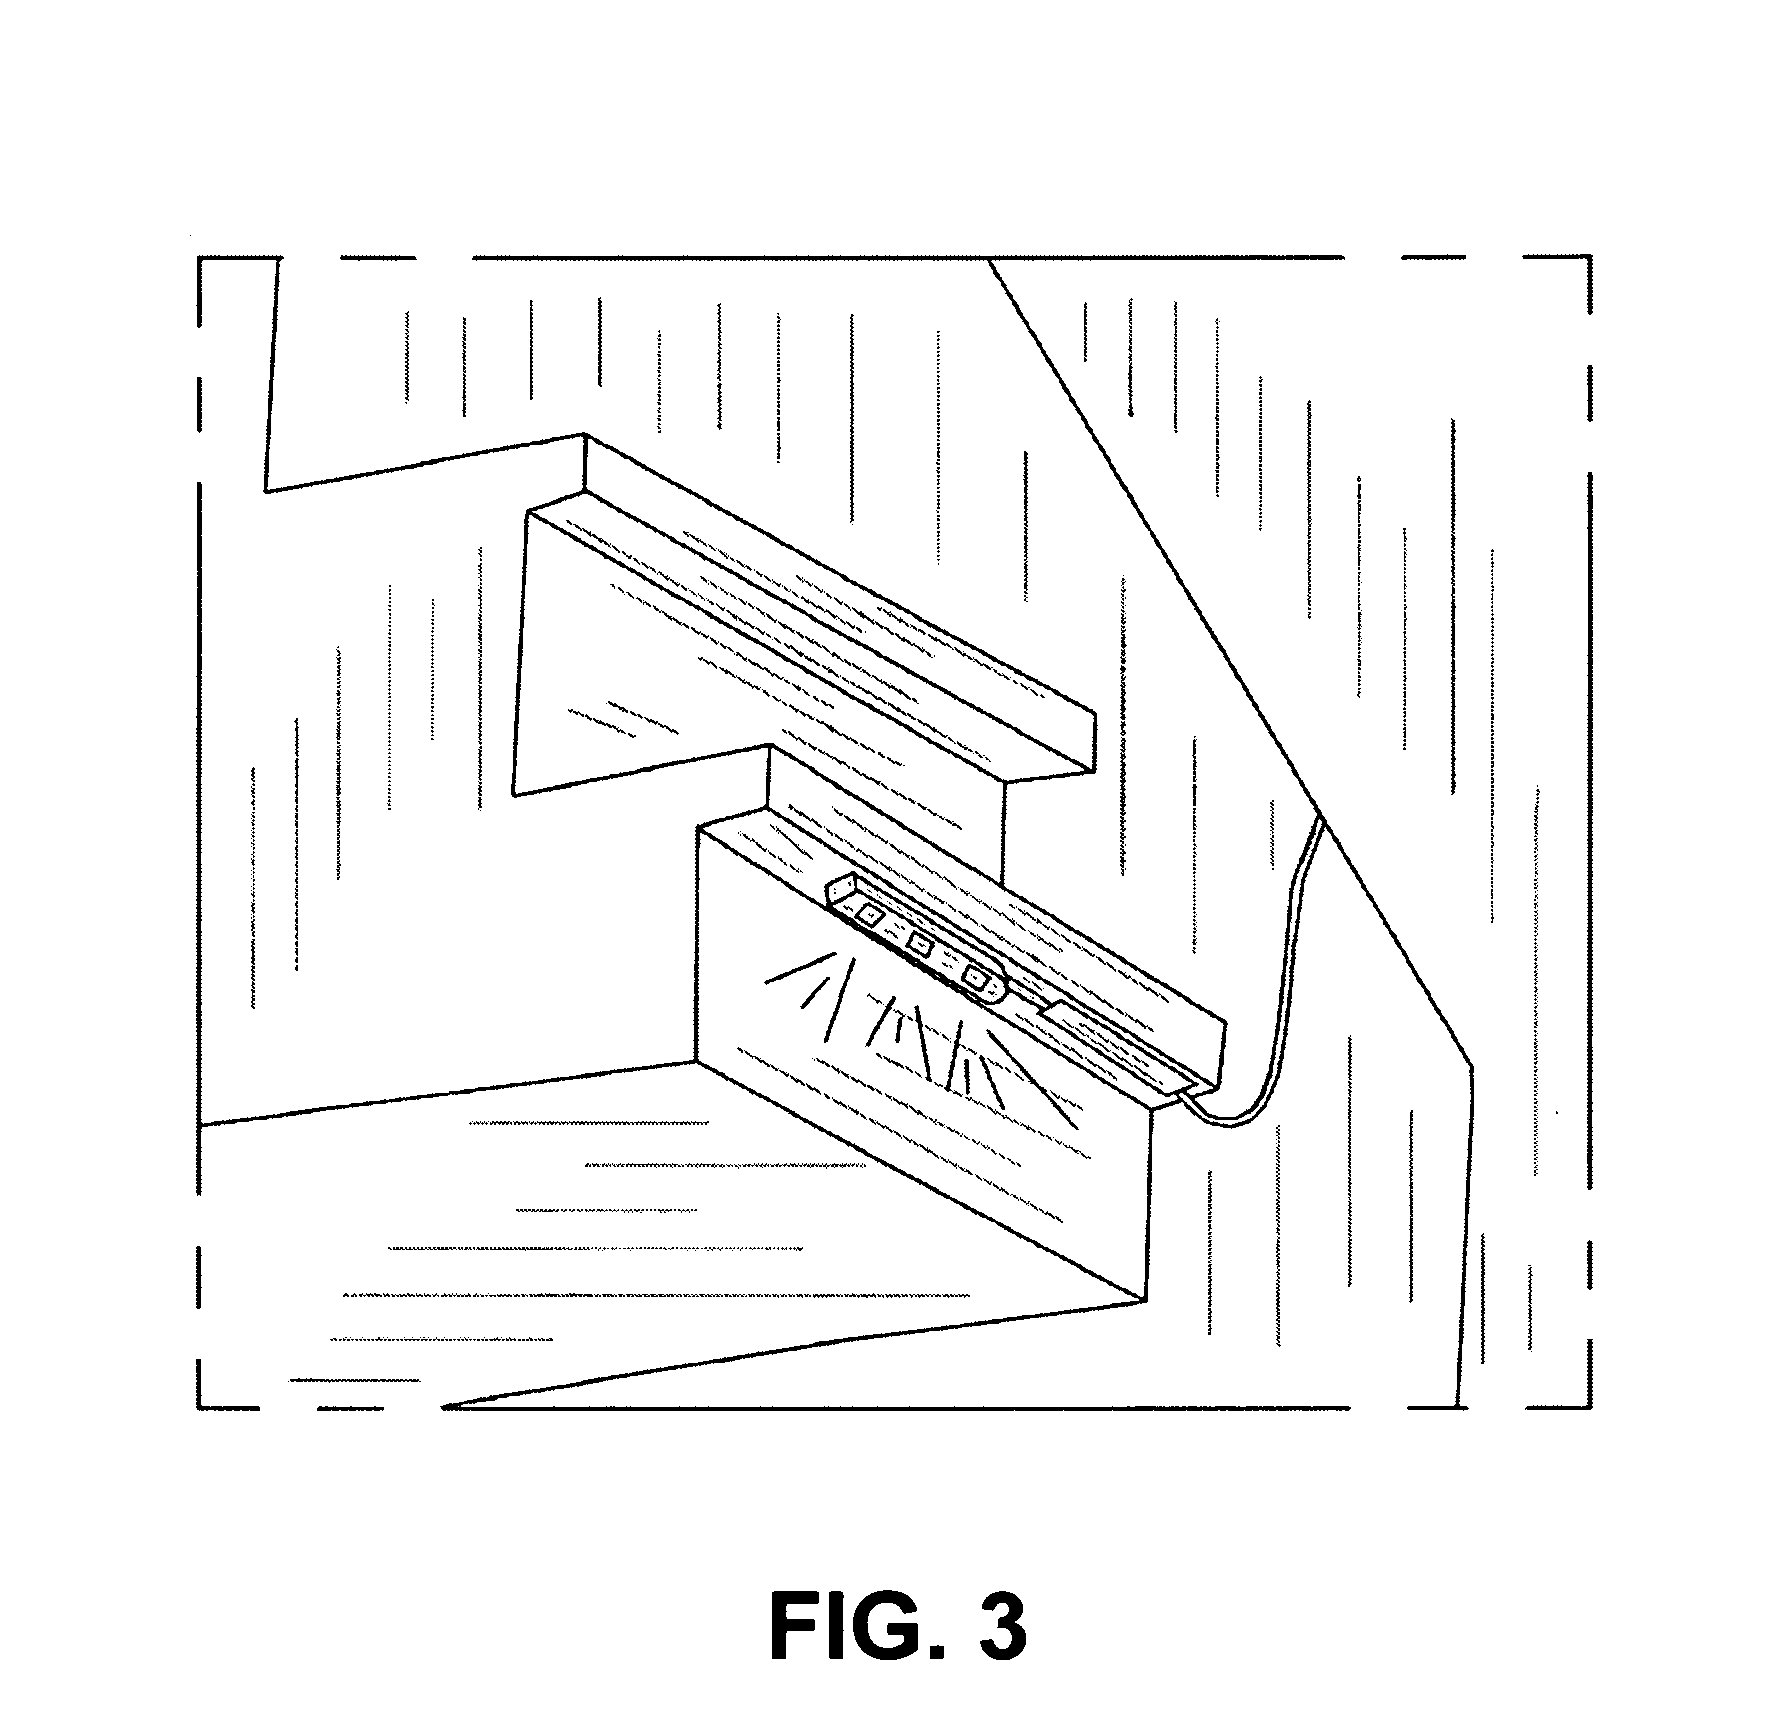 Patent Us7954973 Stair Lighting System And Method For Its Recessed Led Downlight Google Patents On Wiring In Downlights Drawing